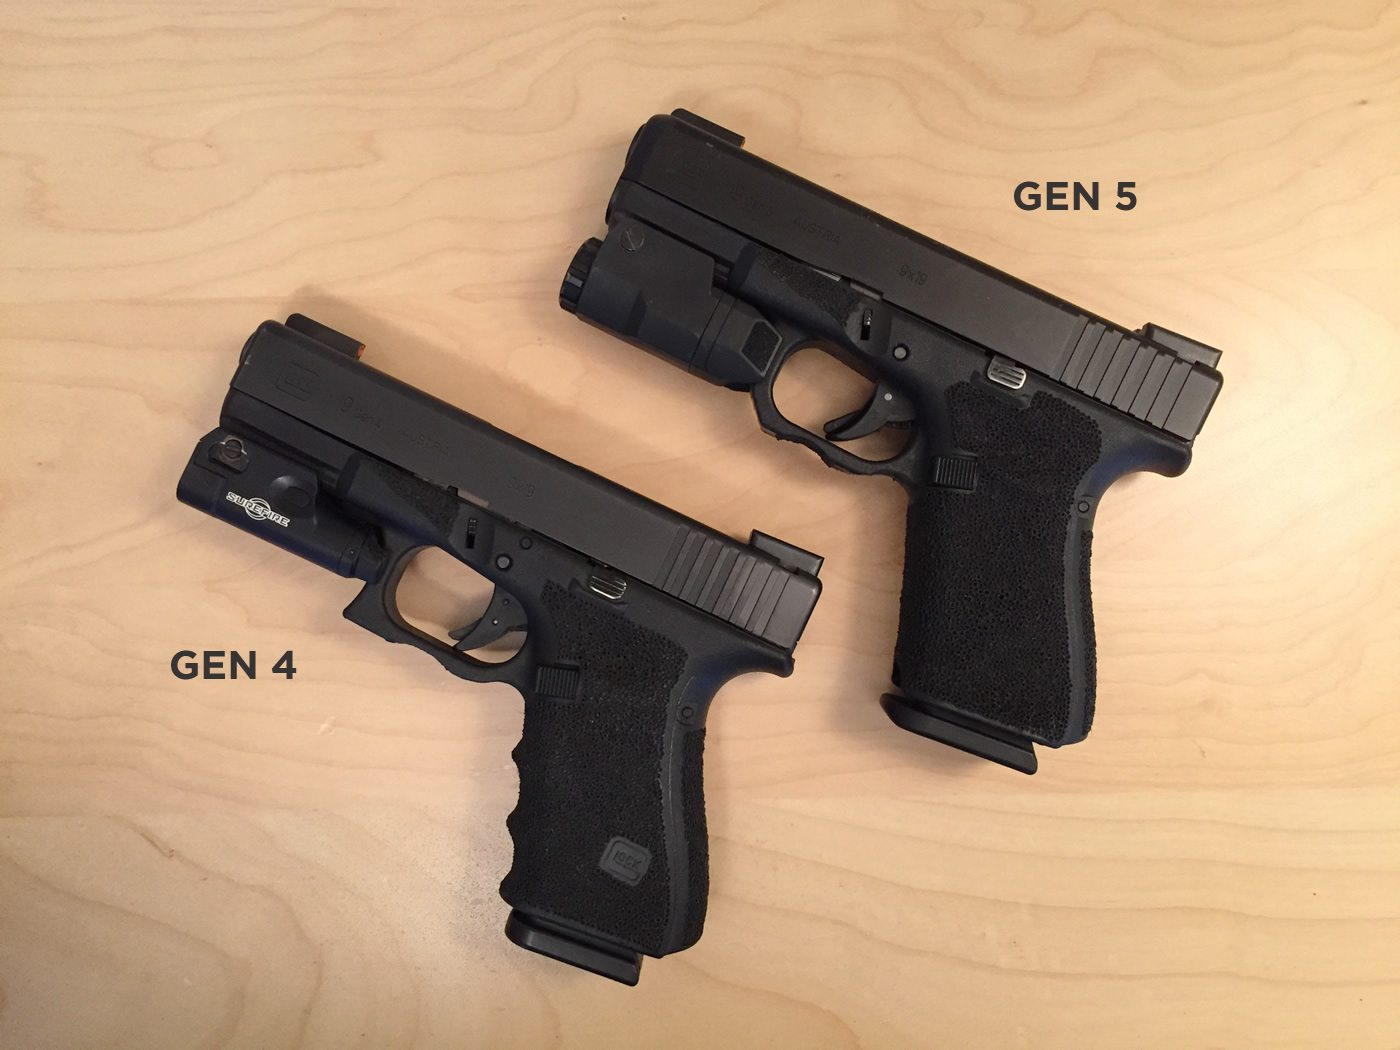 Shooting Review: The Glock 19 Gen 5 | Eagle Gun Range Inc